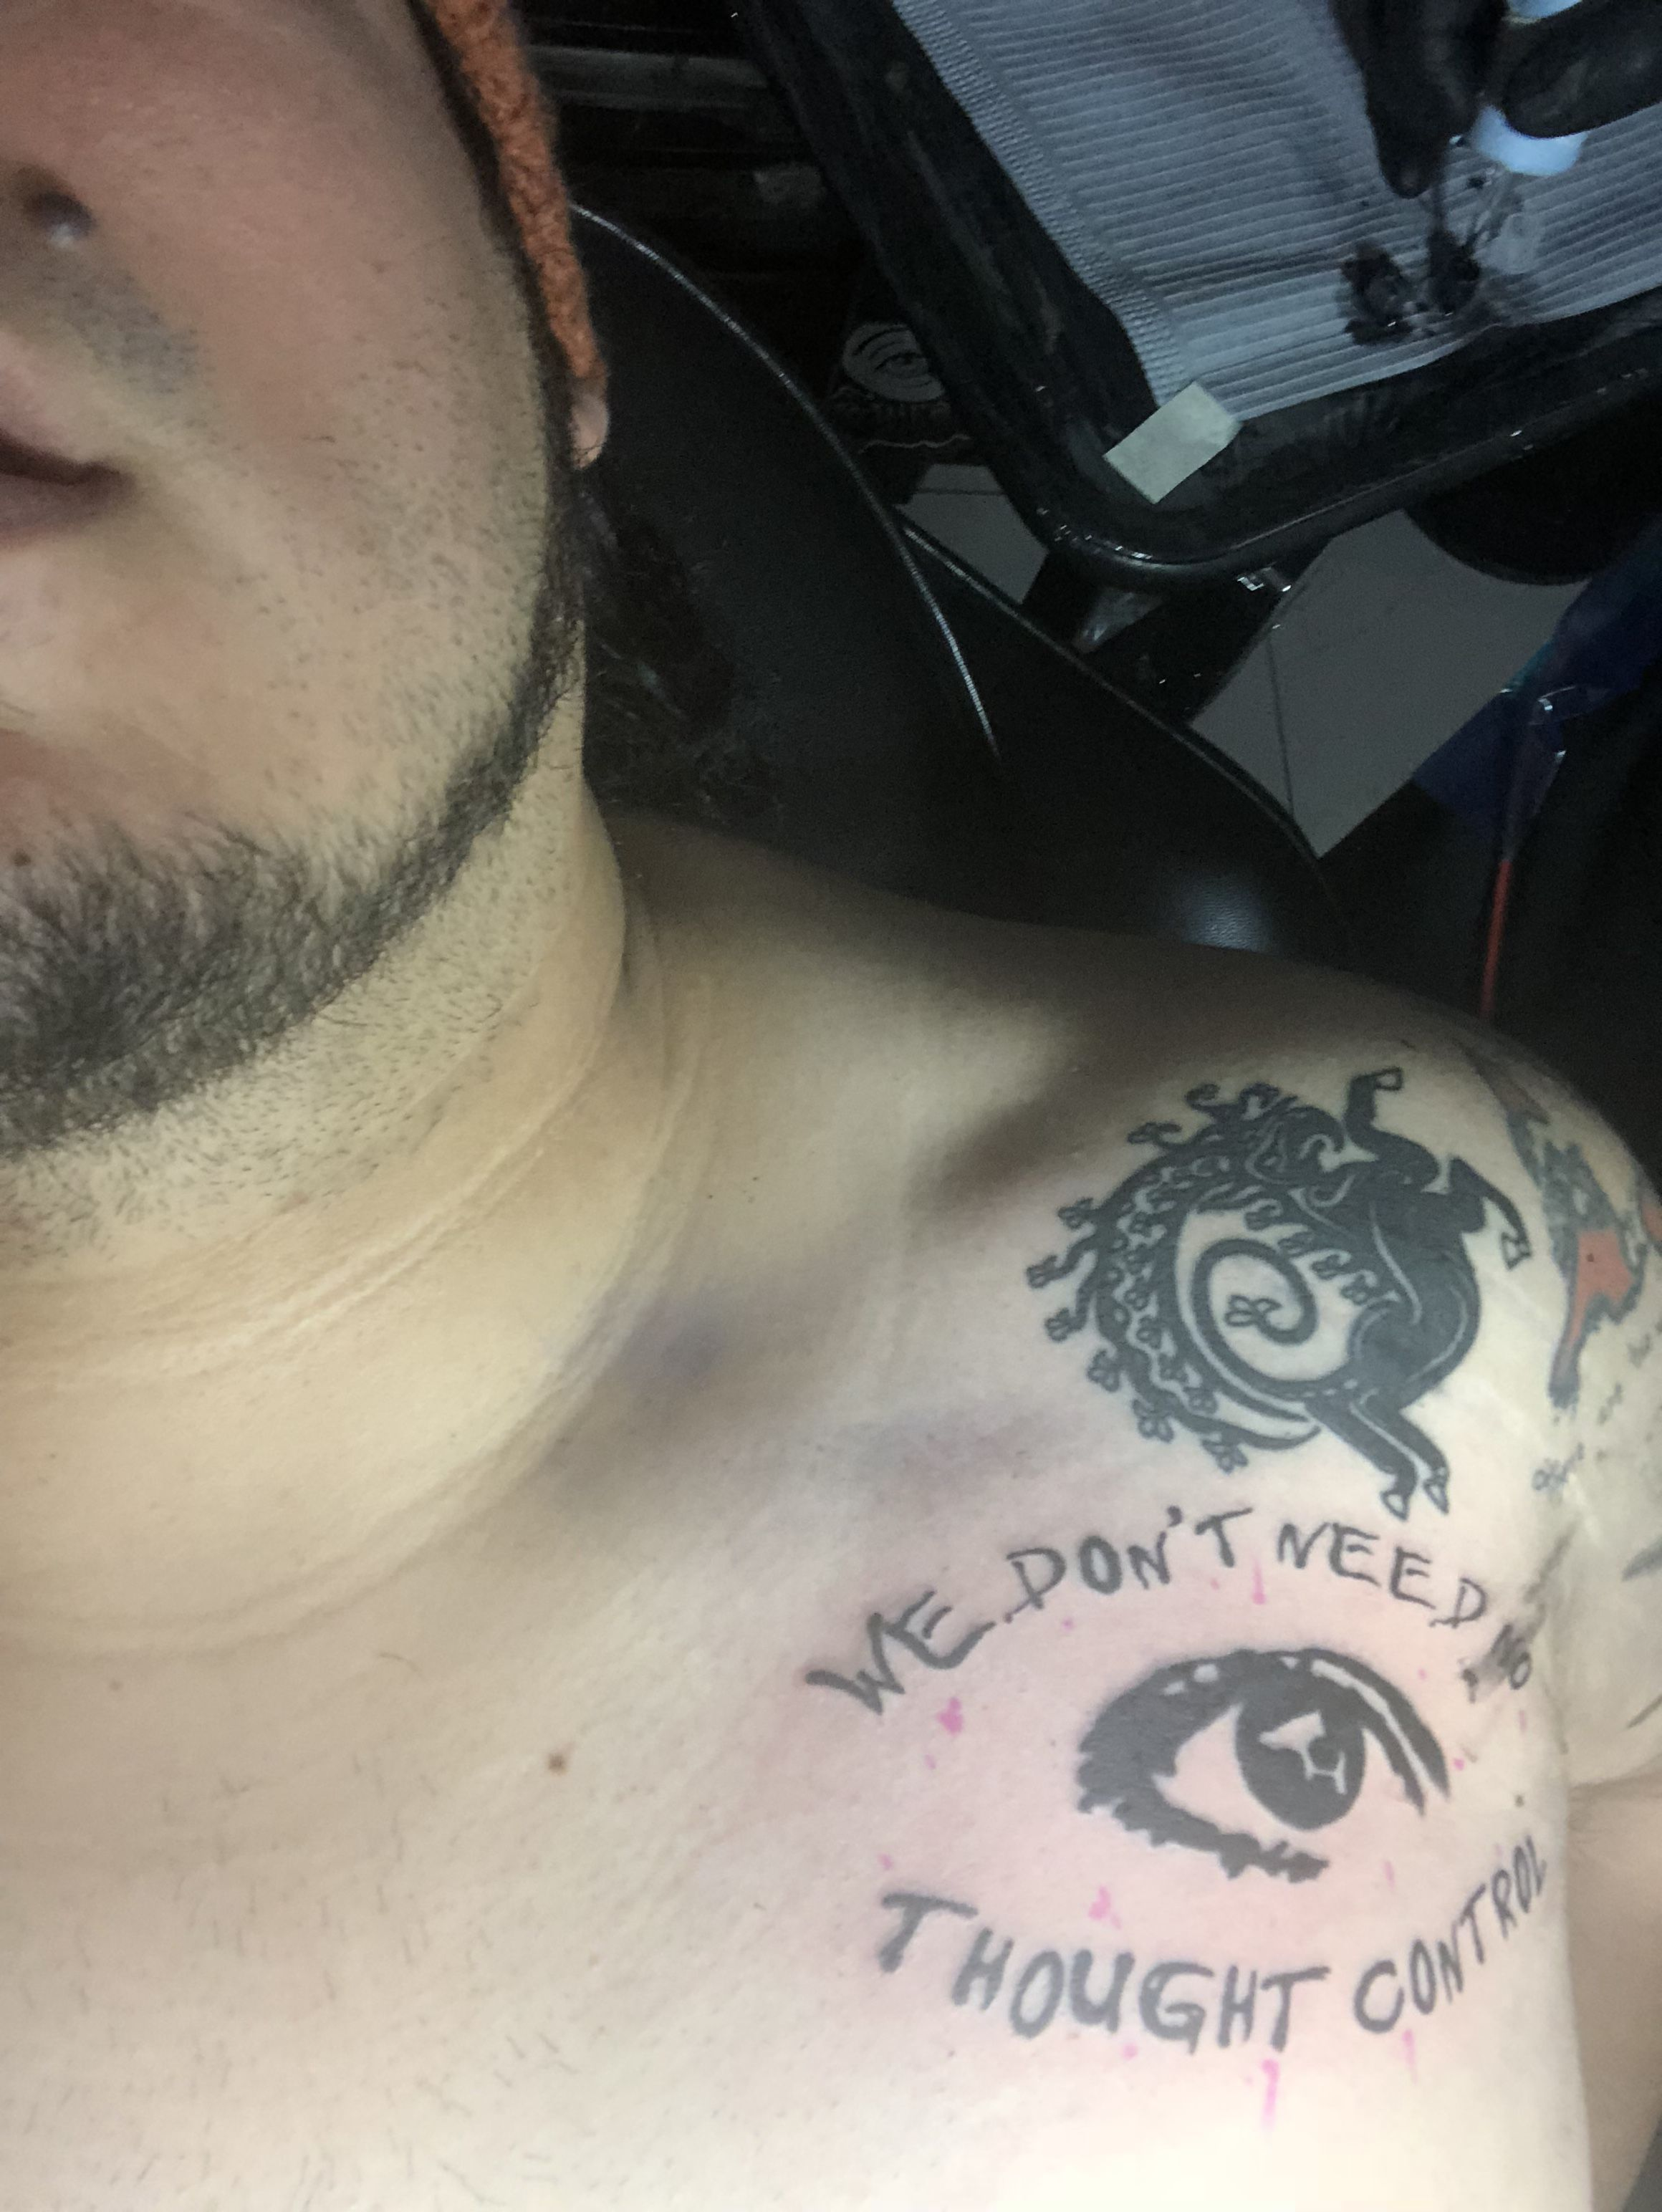 George Floyd Chest Tattoo: Big Brother Is Watching You